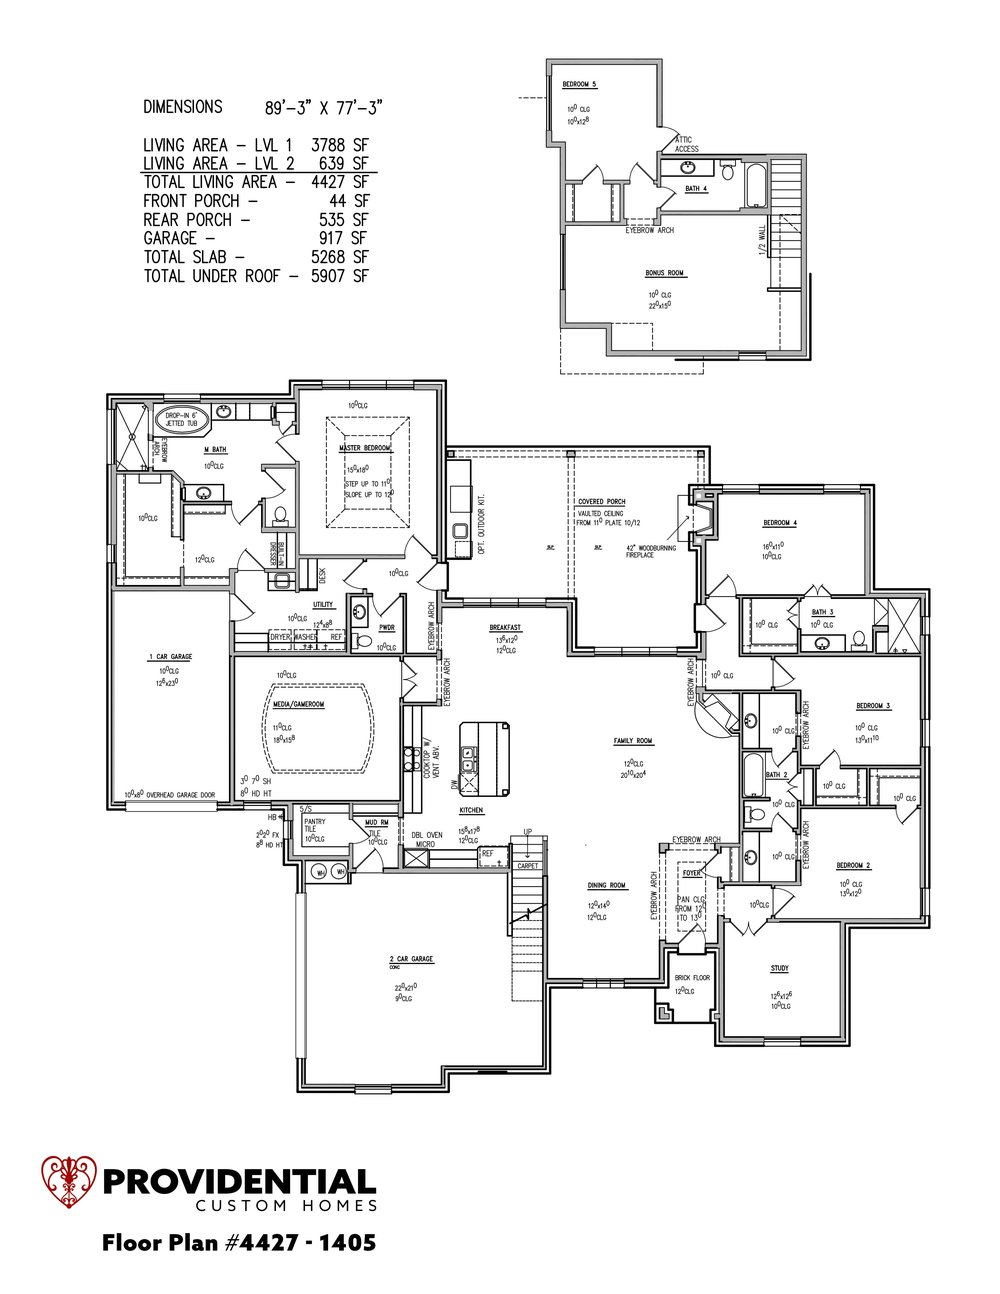 The FLOOR PLAN #4427 - 1405.jpg